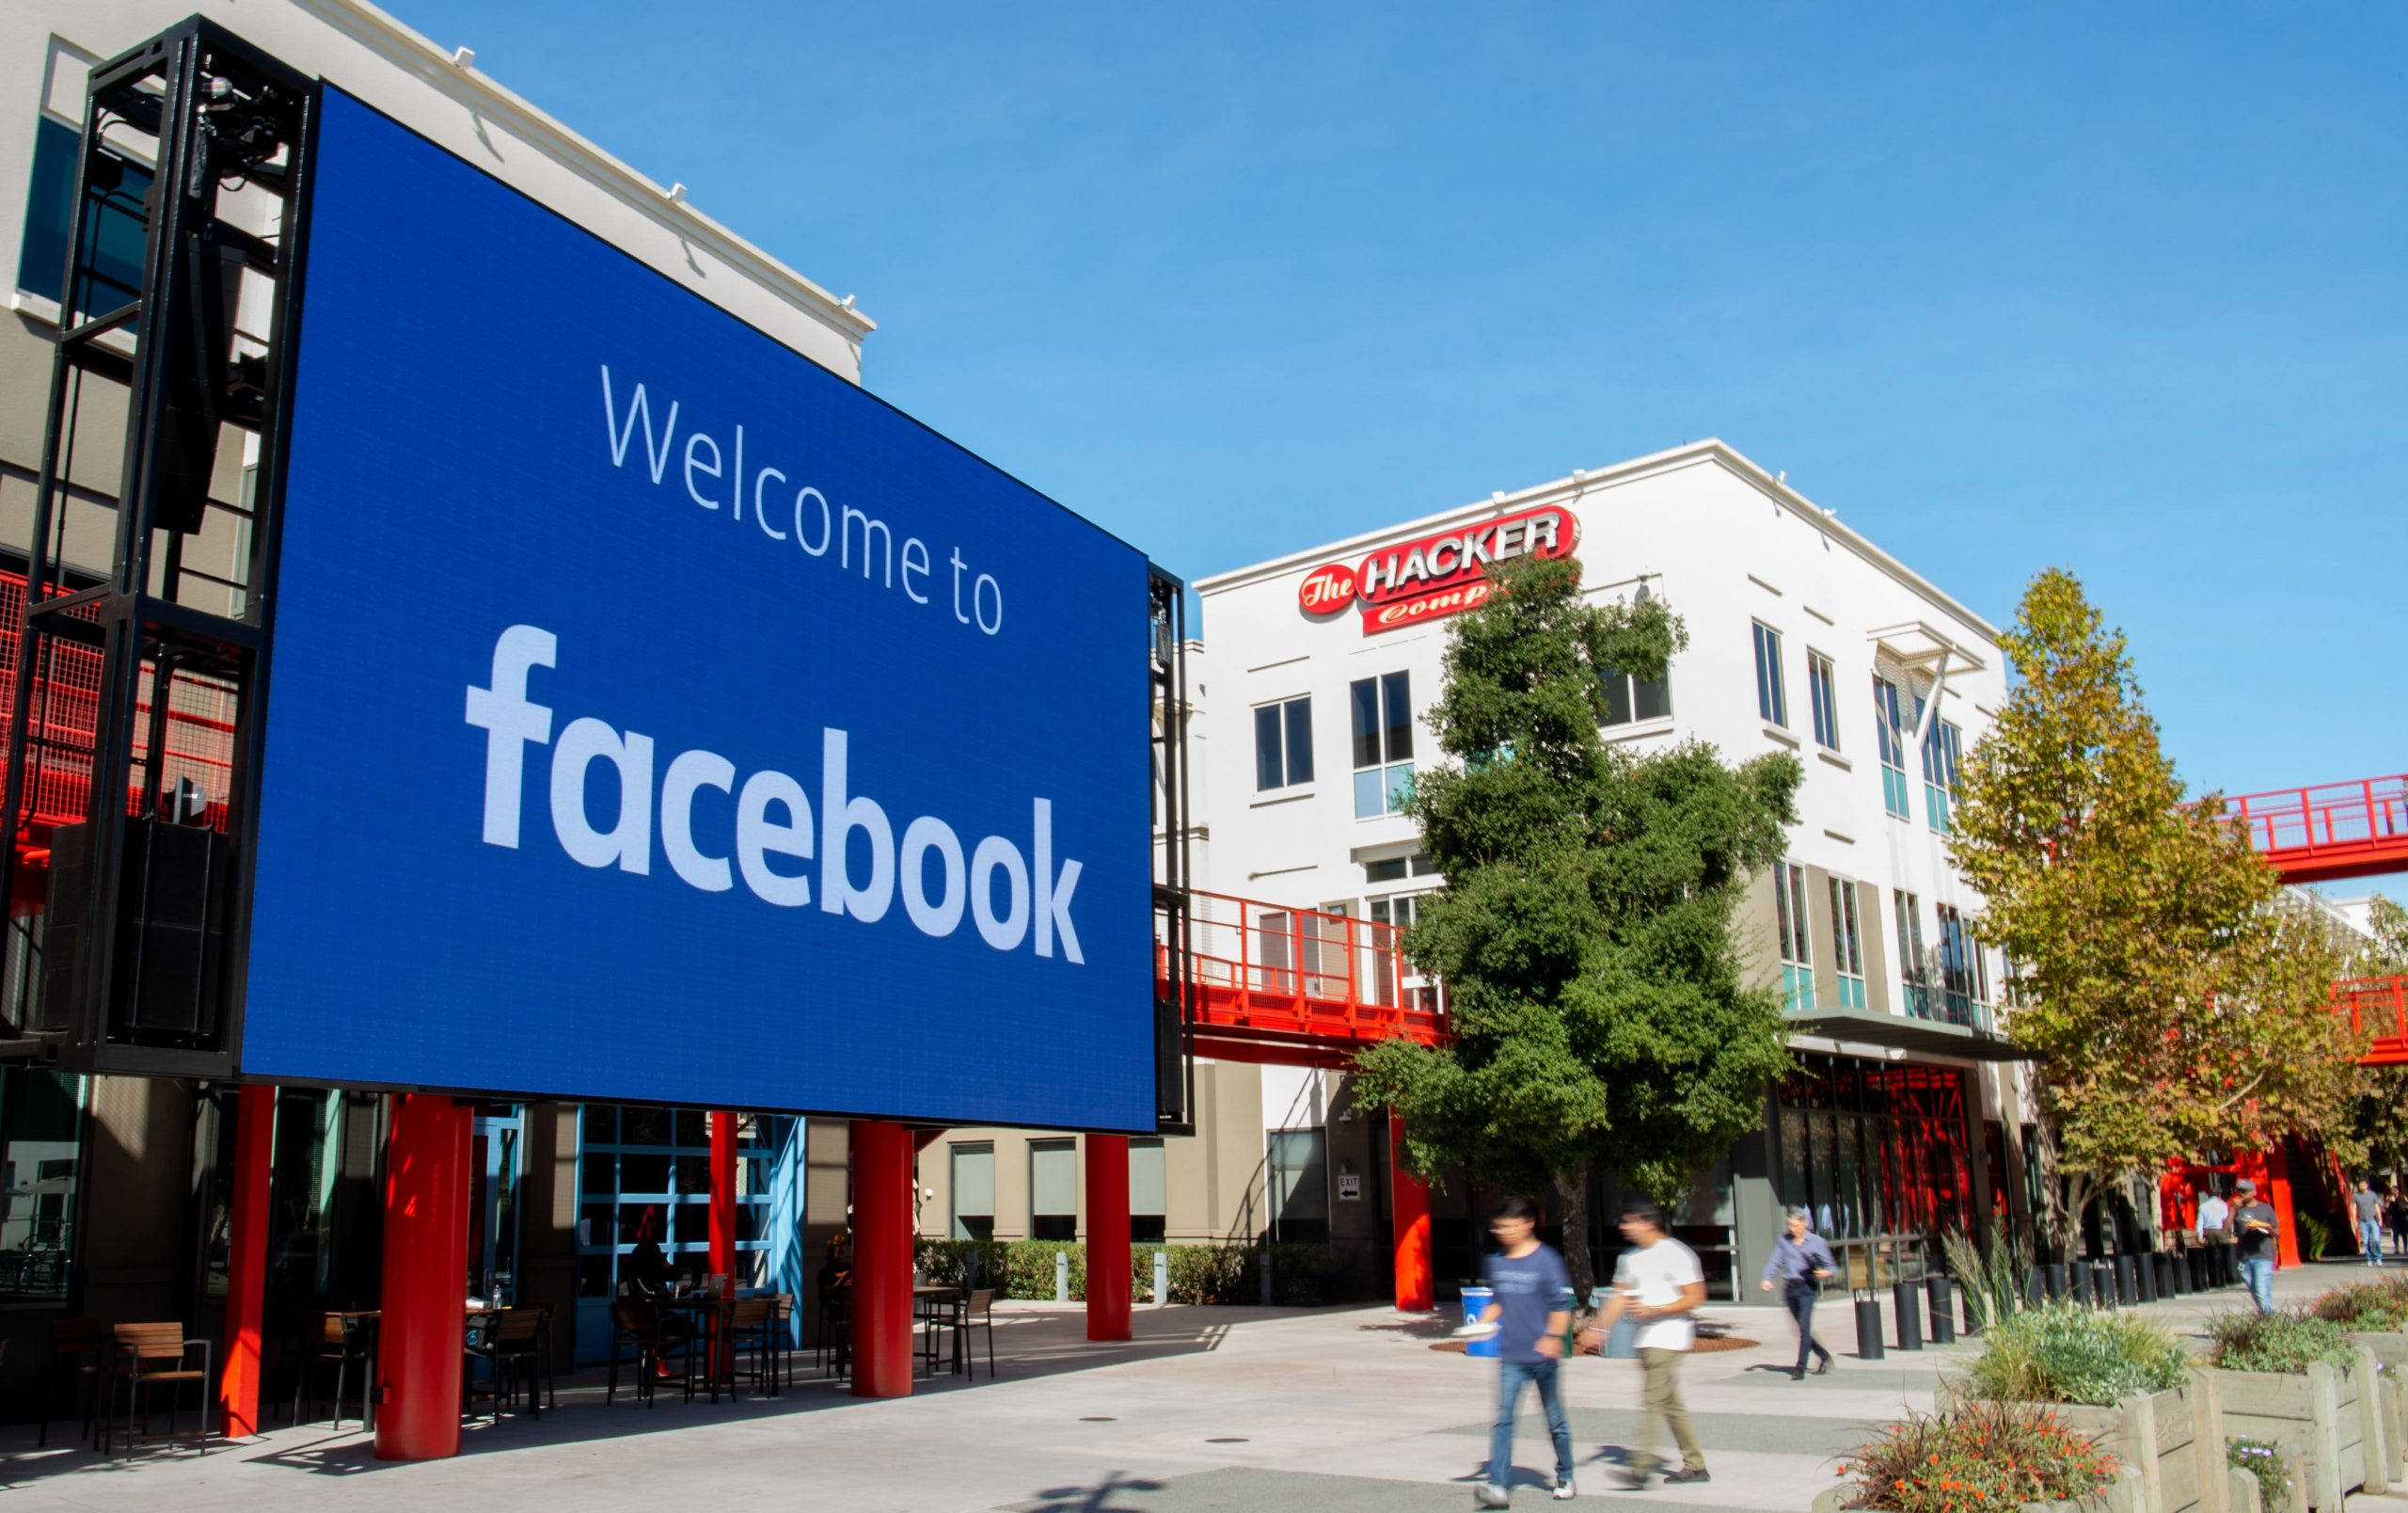 Facebook knew ad metrics were inflated, but ignored the problem to make more money, lawsuit claims